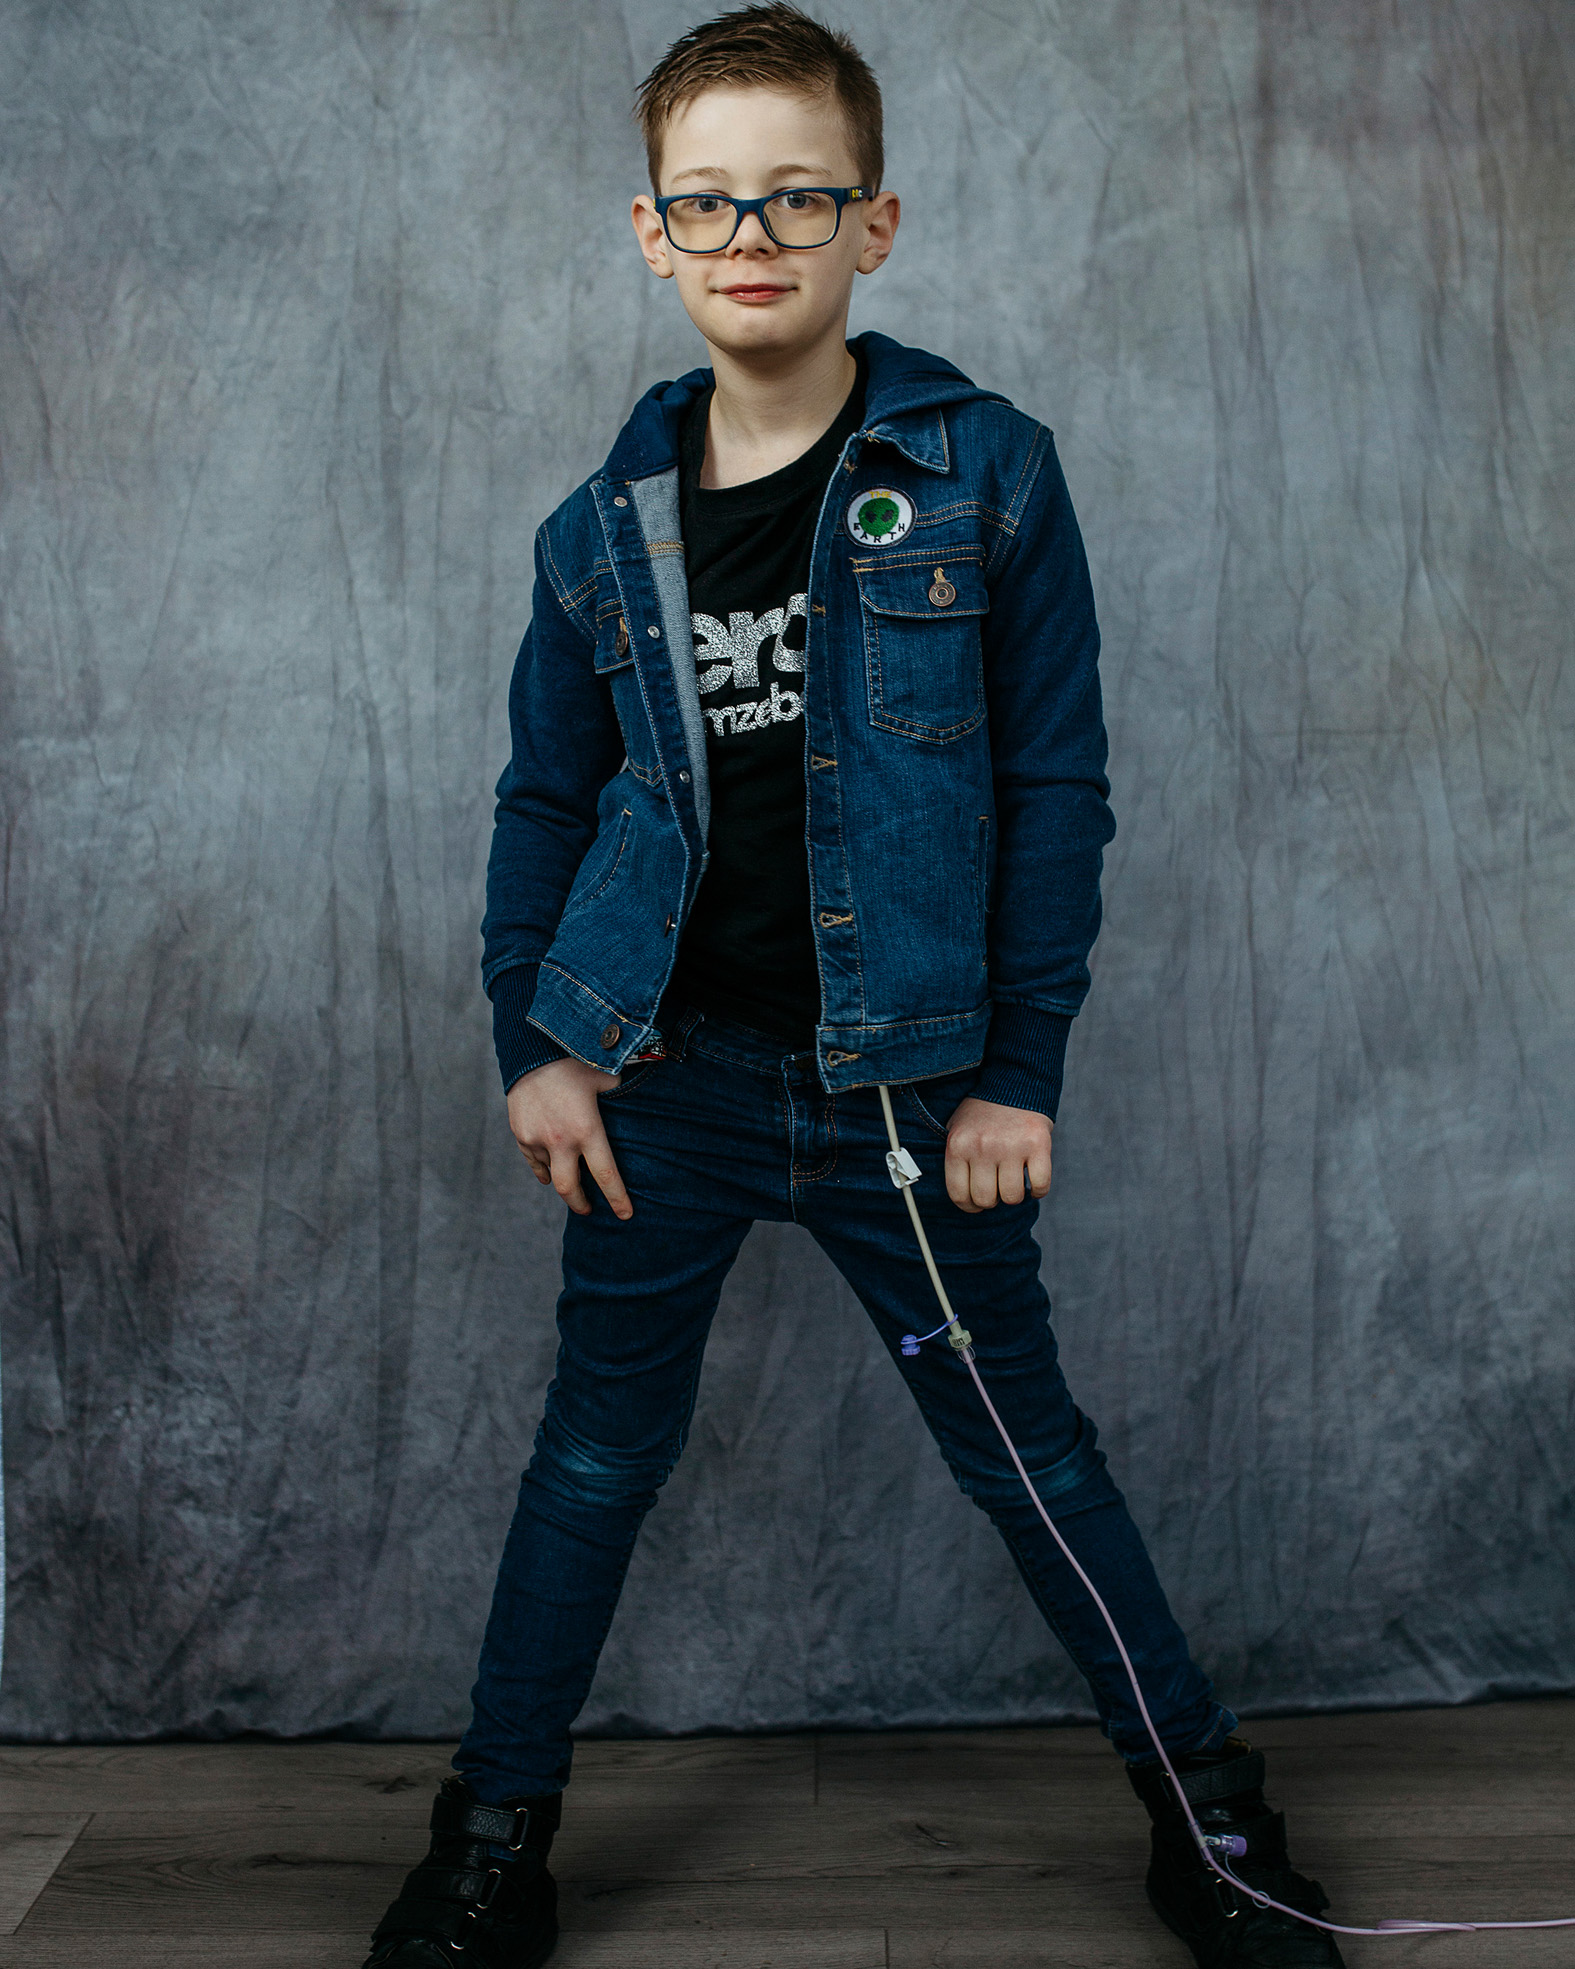 Finlay, ehlers-danlos syndrome, Zebedee